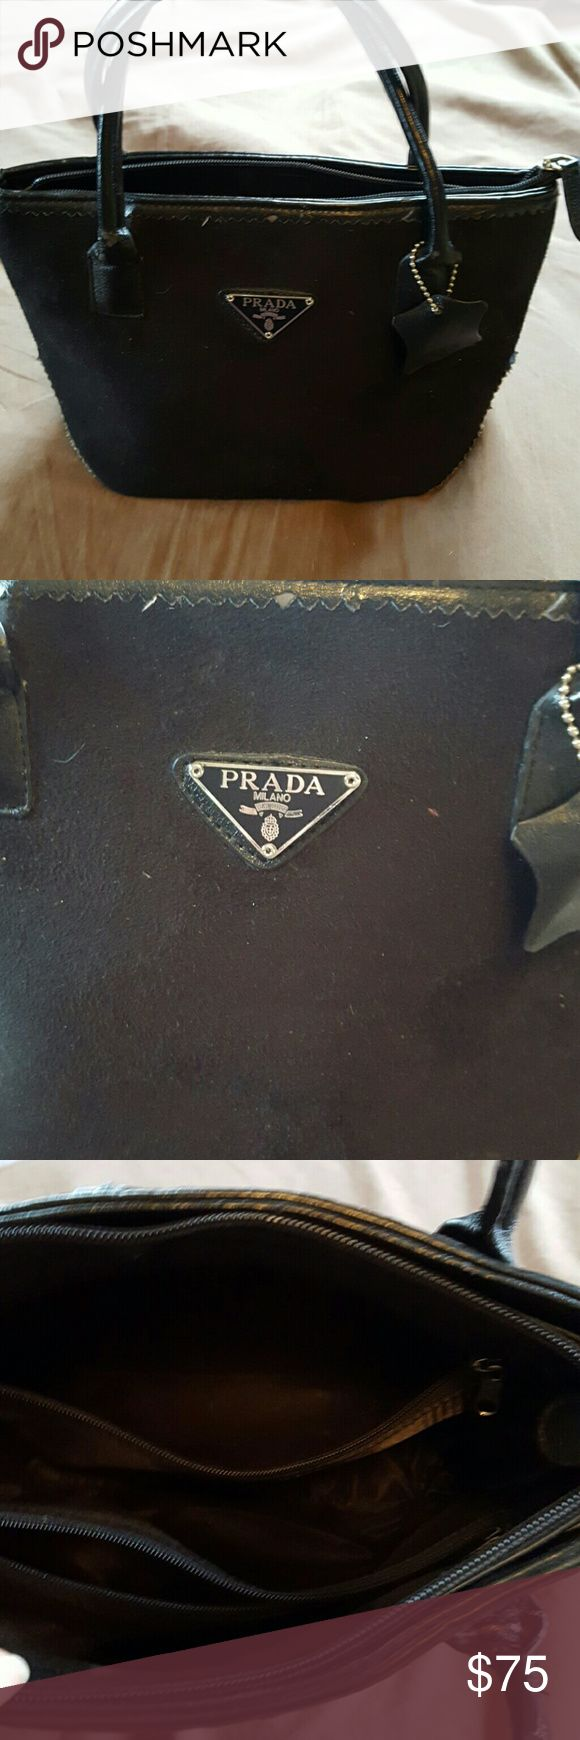 Prada purse Black. 2 pockets inside and a cell phone pocket. Shows some wear. Leather and velvet. Prada Bags